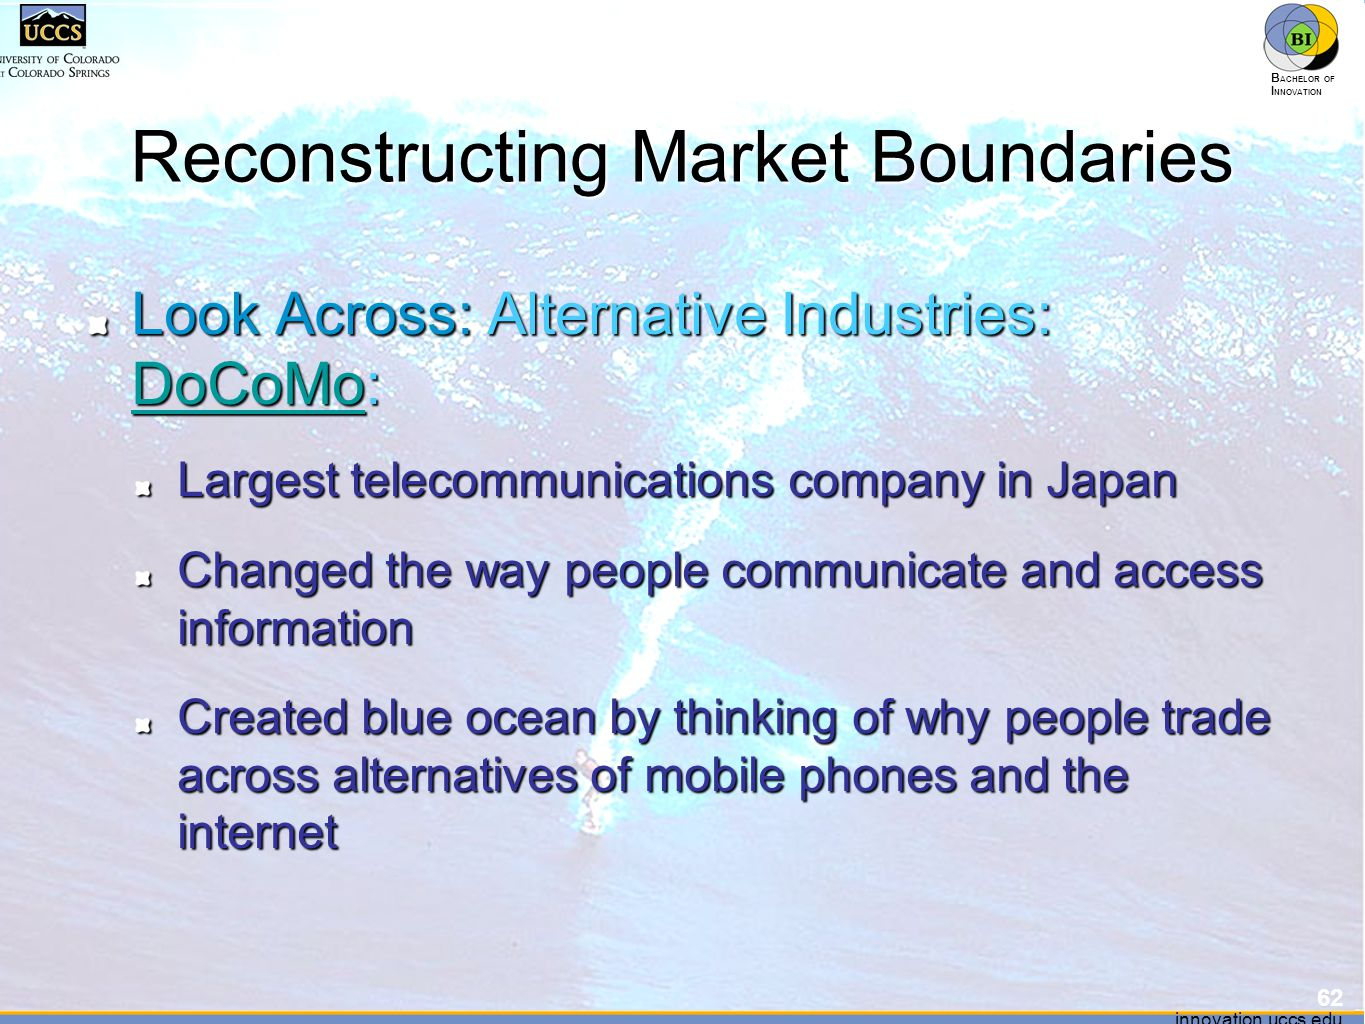 innovation.uccs.edu B ACHELOR OF I NNOVATION ™ innovation.uccs.edu B ACHELOR OF I NNOVATION ™ Reconstructing Market Boundaries Look Across: Alternative Industries: DoCoMo: DoCoMo Largest telecommunications company in Japan Changed the way people communicate and access information Created blue ocean by thinking of why people trade across alternatives of mobile phones and the internet 62